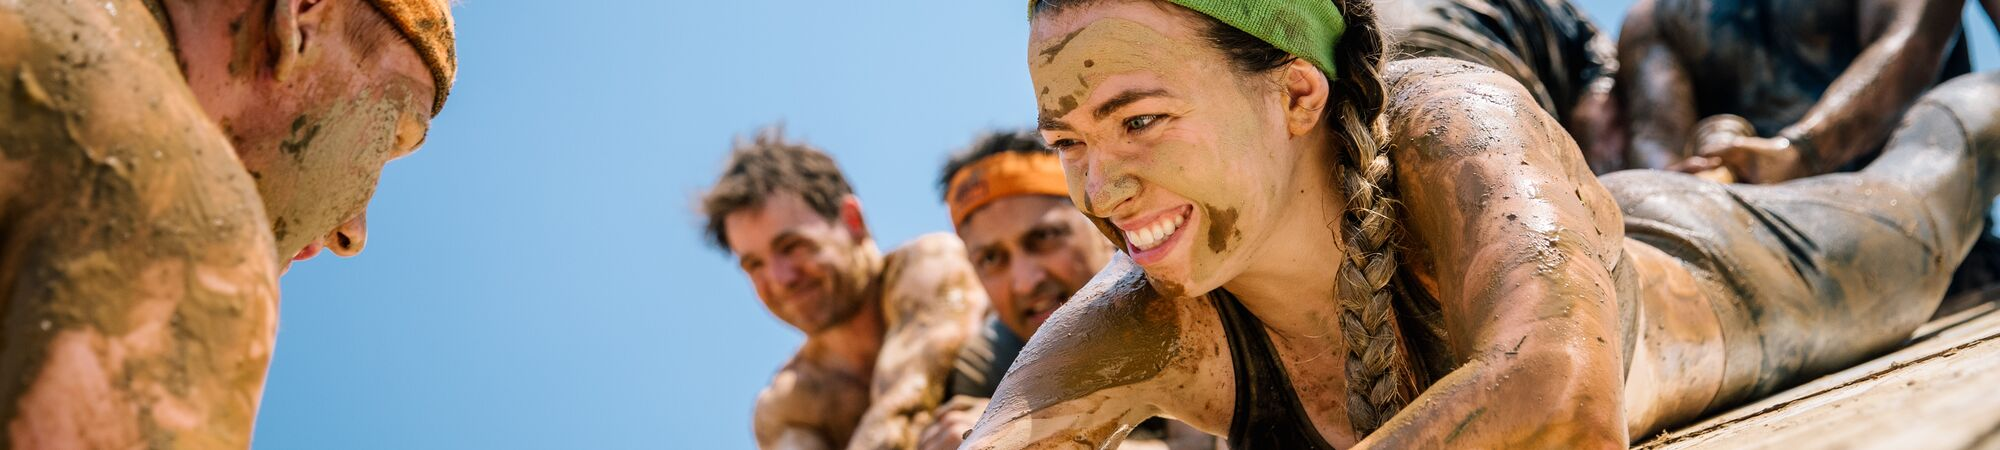 Tough Mudder Masthead Image